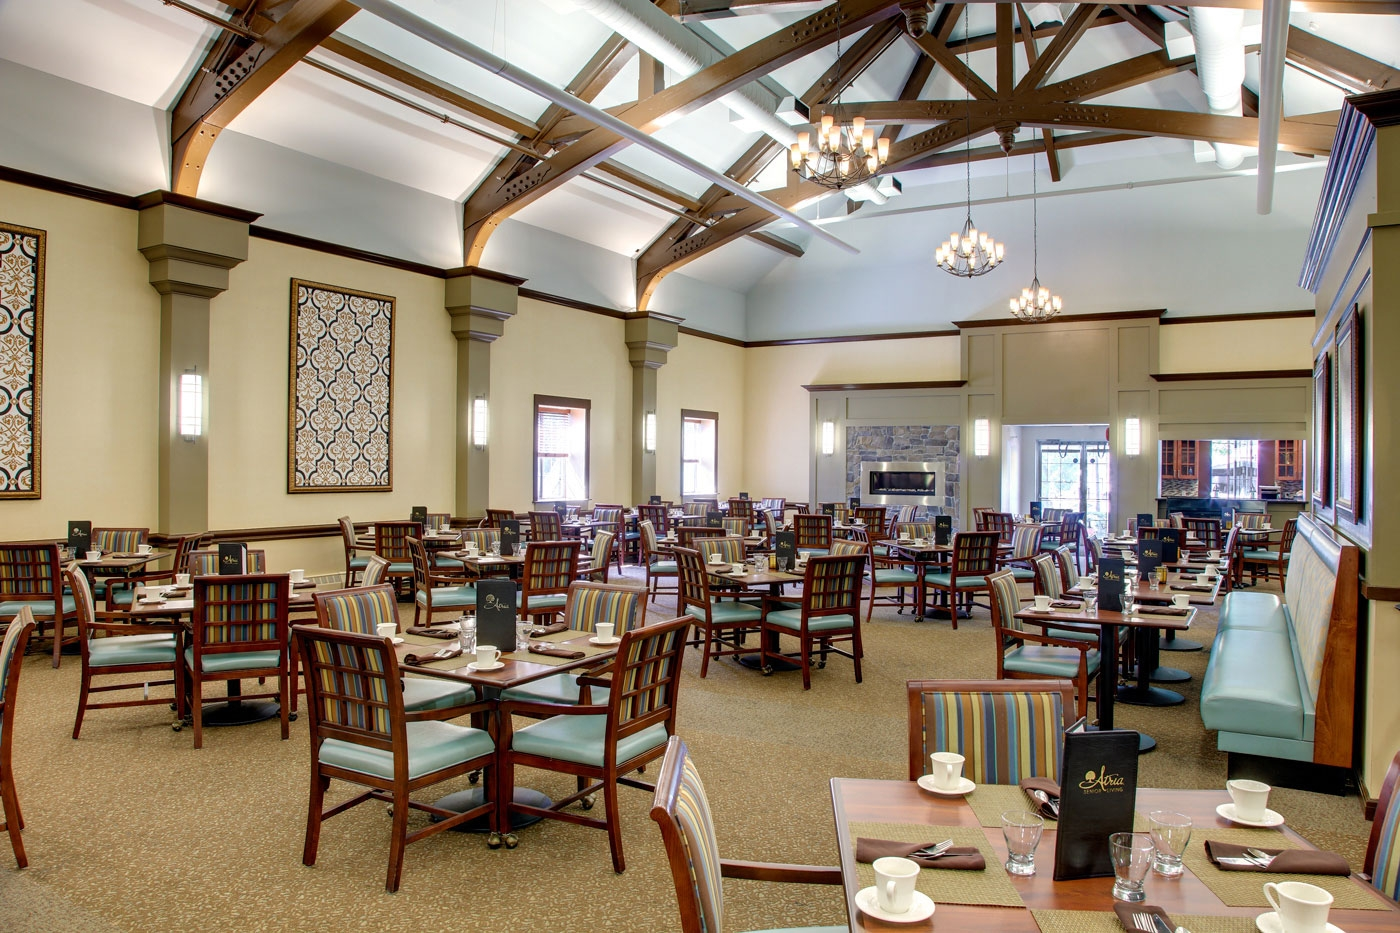 This dining room in a memory care community provides a bright and spacious area to gather.